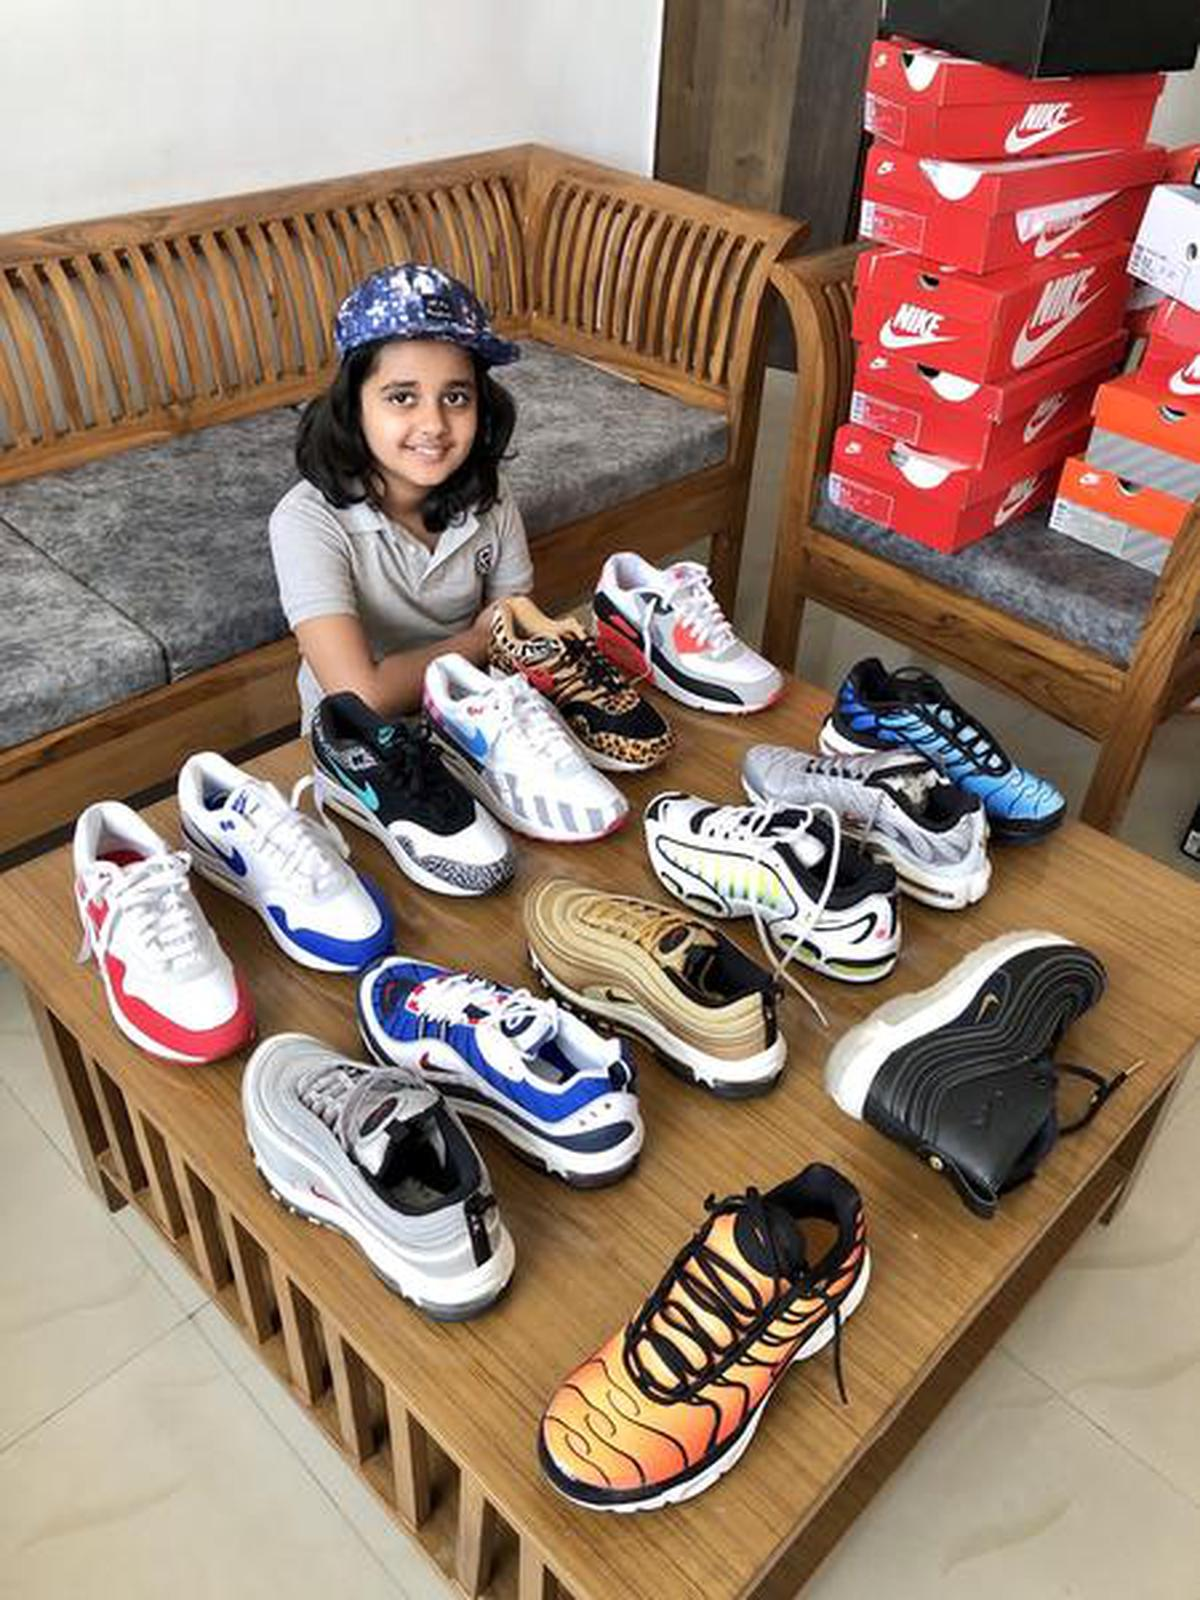 Atul Sharma's 10-year-old daughter with her budding collection of sneakers